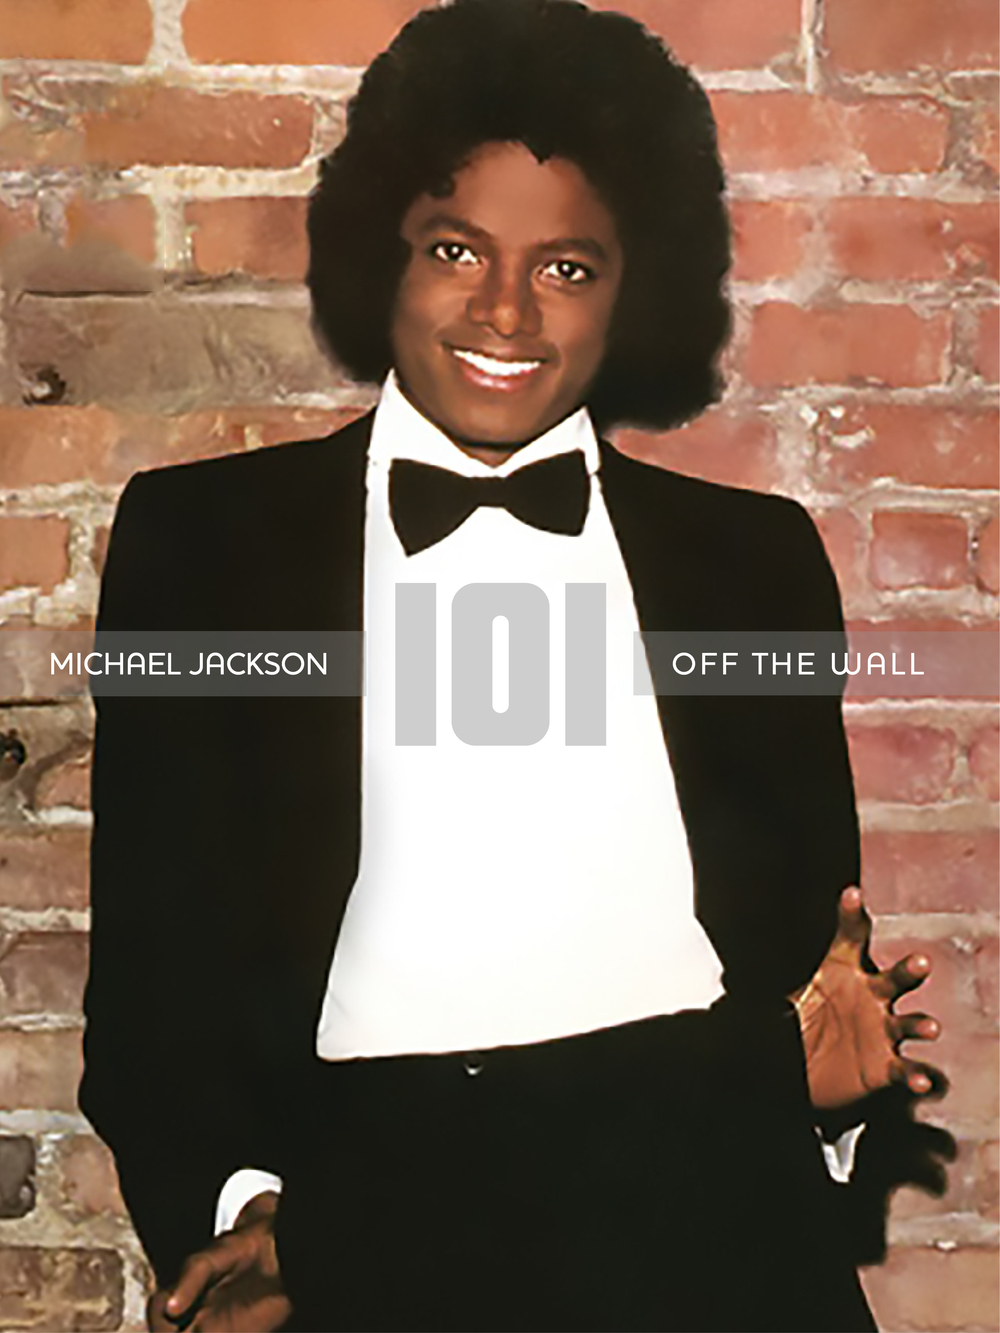 Off The Wall - a track by track review of this classic album